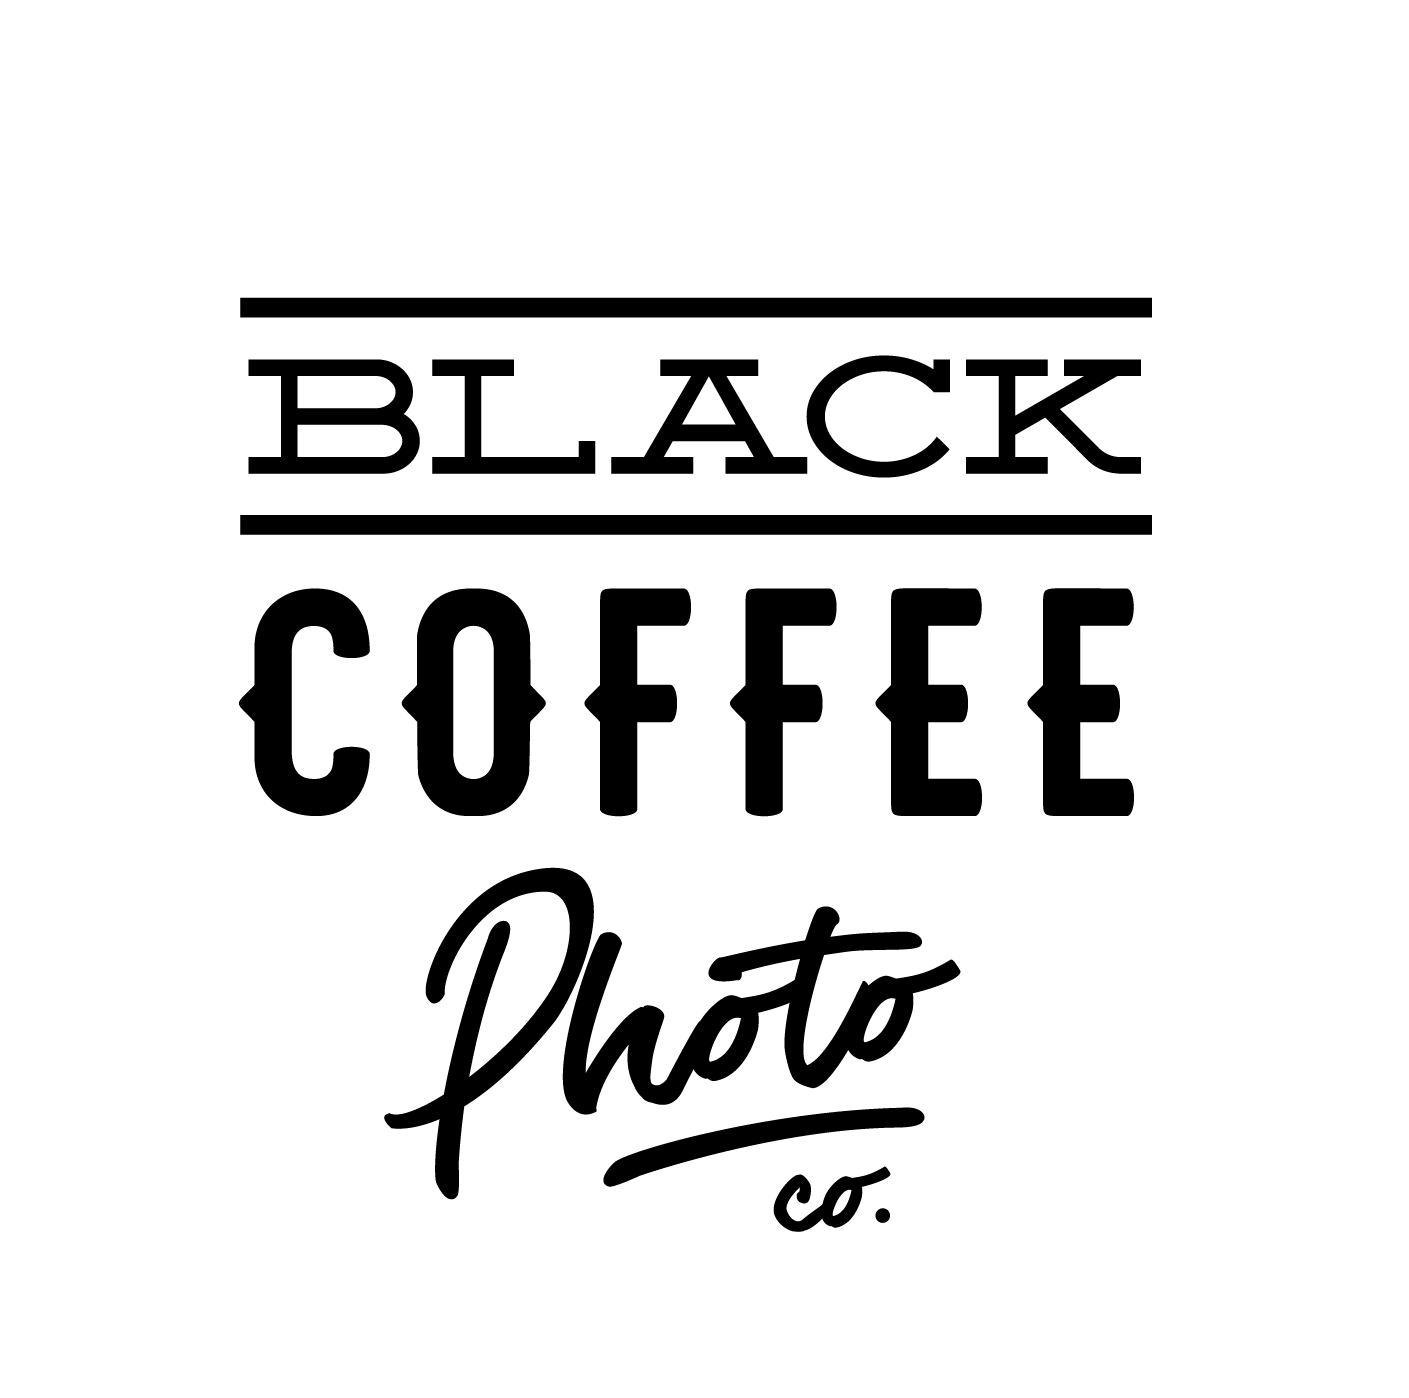 Black Coffee Photo